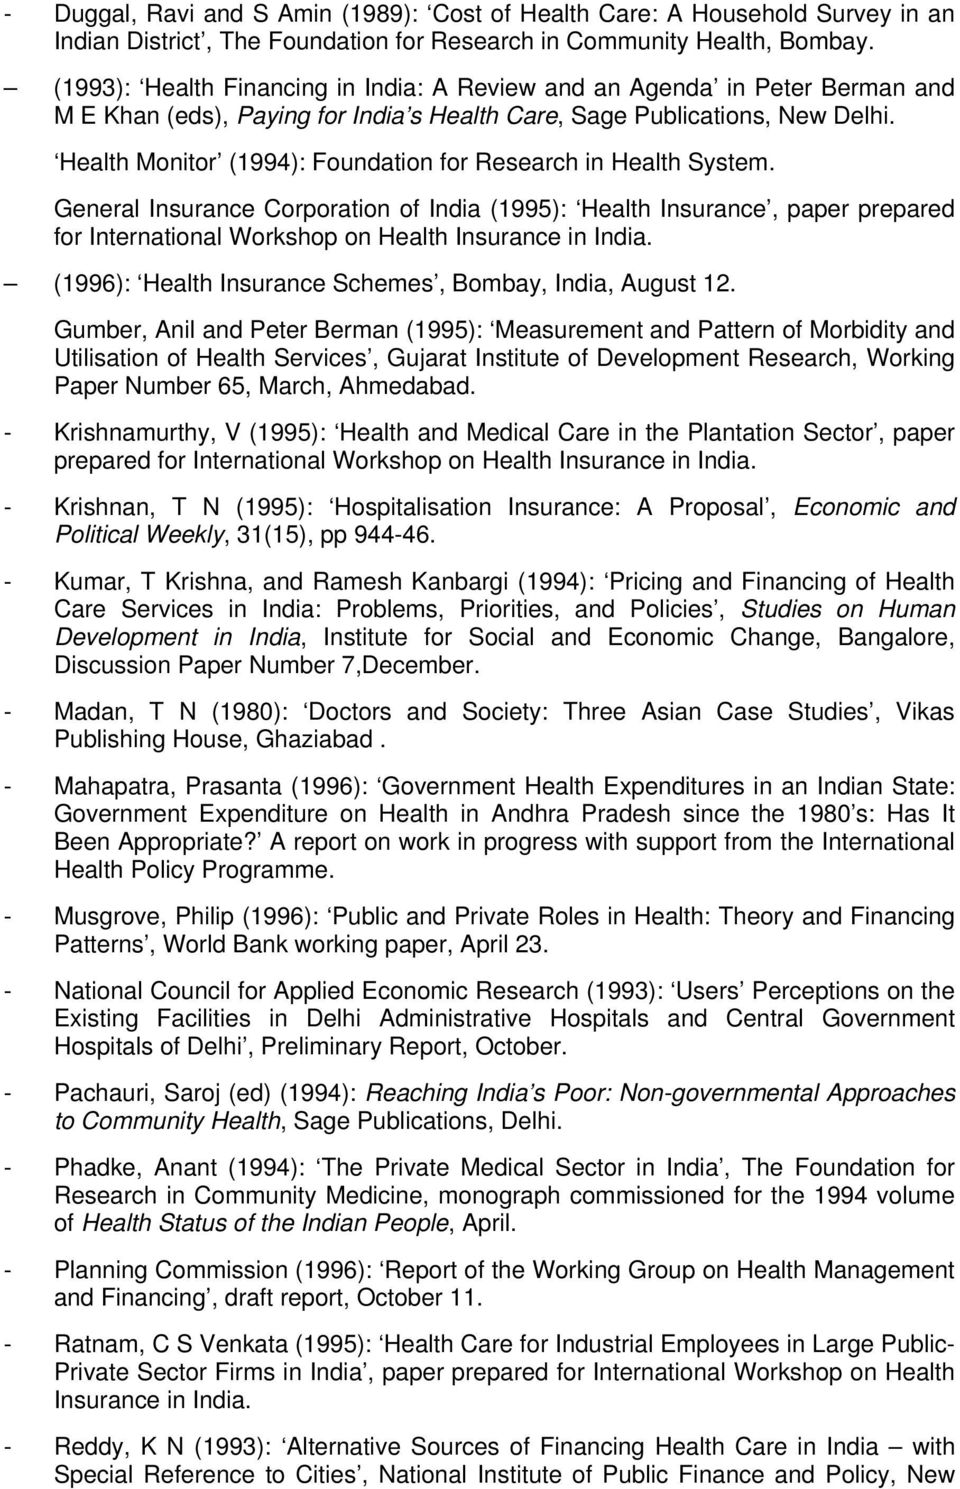 Health Monitor (1994): Foundation for Research in Health System.